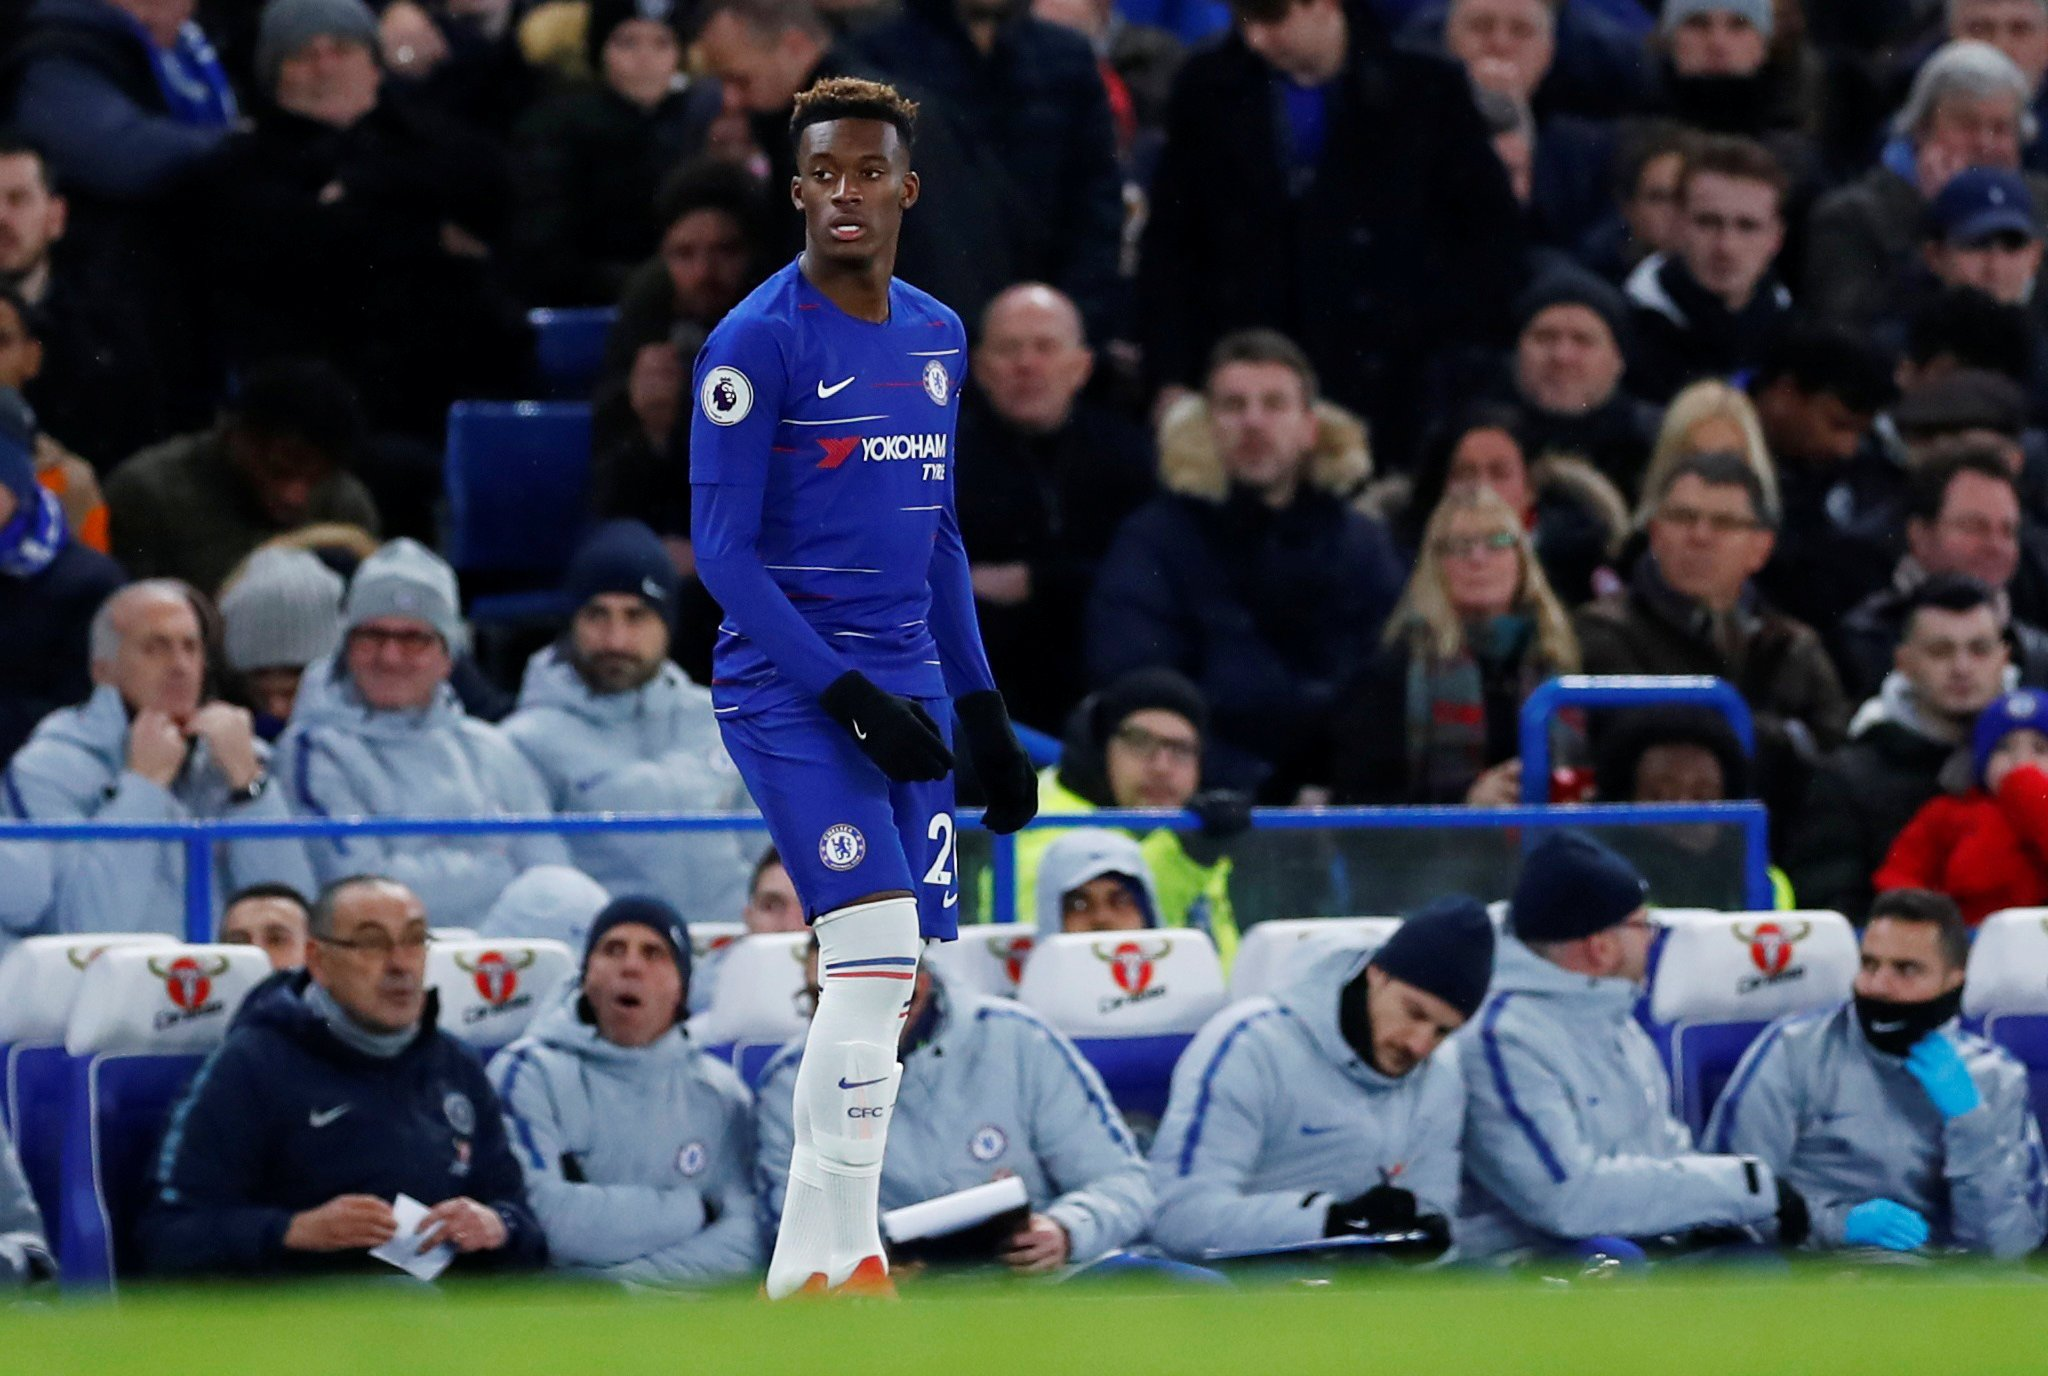 """Soccer Football - Premier League - Chelsea v Newcastle United - Stamford Bridge, London, Britain - January 12, 2019 Chelsea's Callum Hudson-Odoi reacts as manager Maurizio Sarri looks on REUTERS/Eddie Keogh EDITORIAL USE ONLY. No use with unauthorized audio, video, data, fixture lists, club/league logos or """"live"""" services. Online in-match use limited to 75 images, no video emulation. No use in betting, games or single club/league/player publications. Please contact your account representative for further details."""